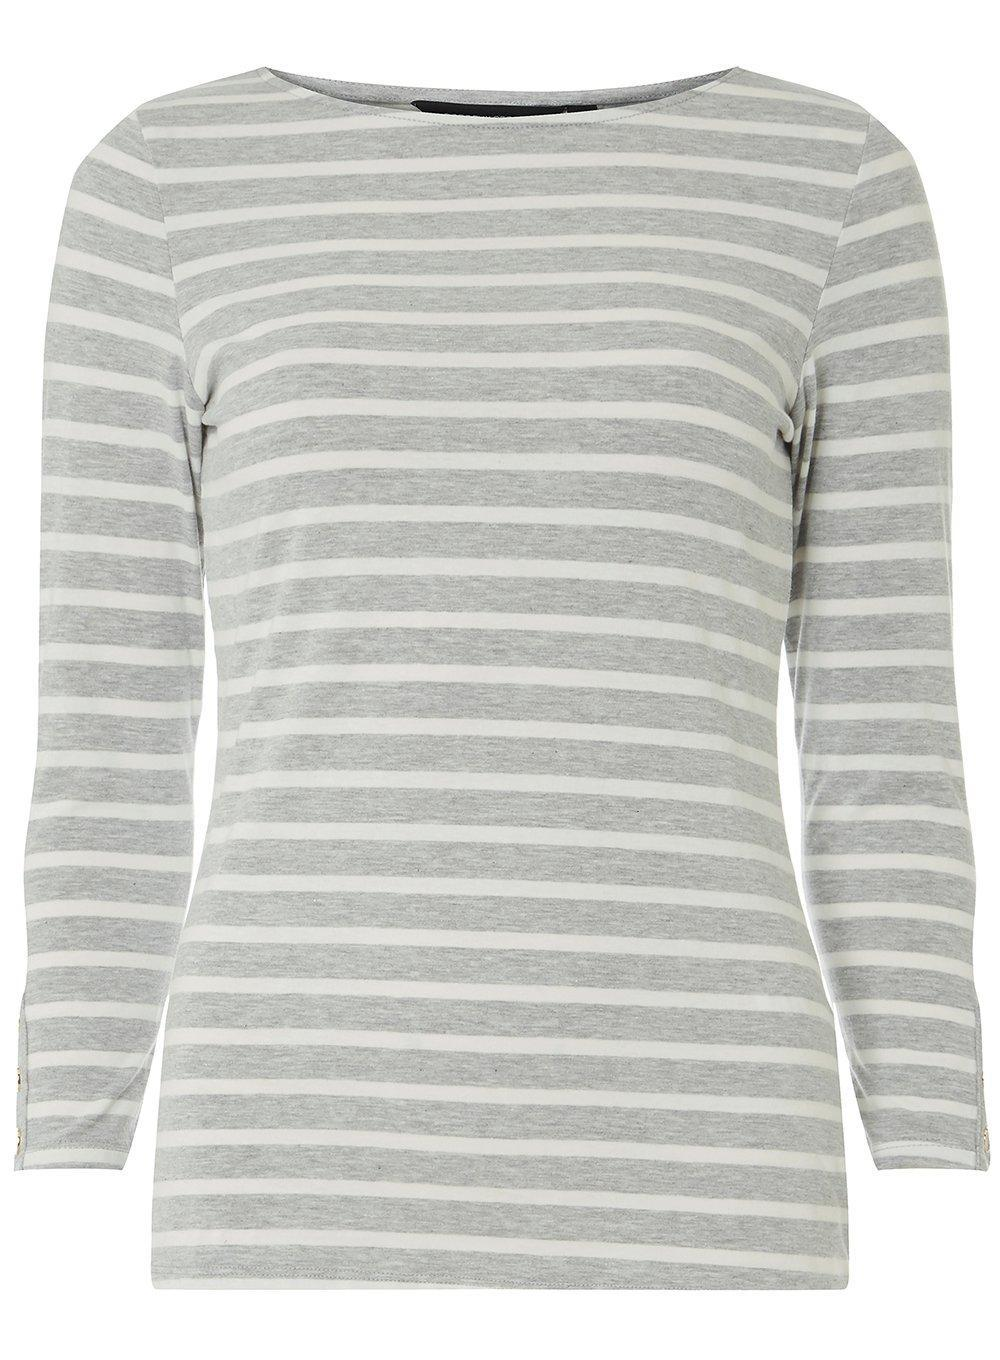 d3cbf69a54388 Dorothy Perkins Maternity Grey 3/4 Sleeve Top in Gray - Lyst